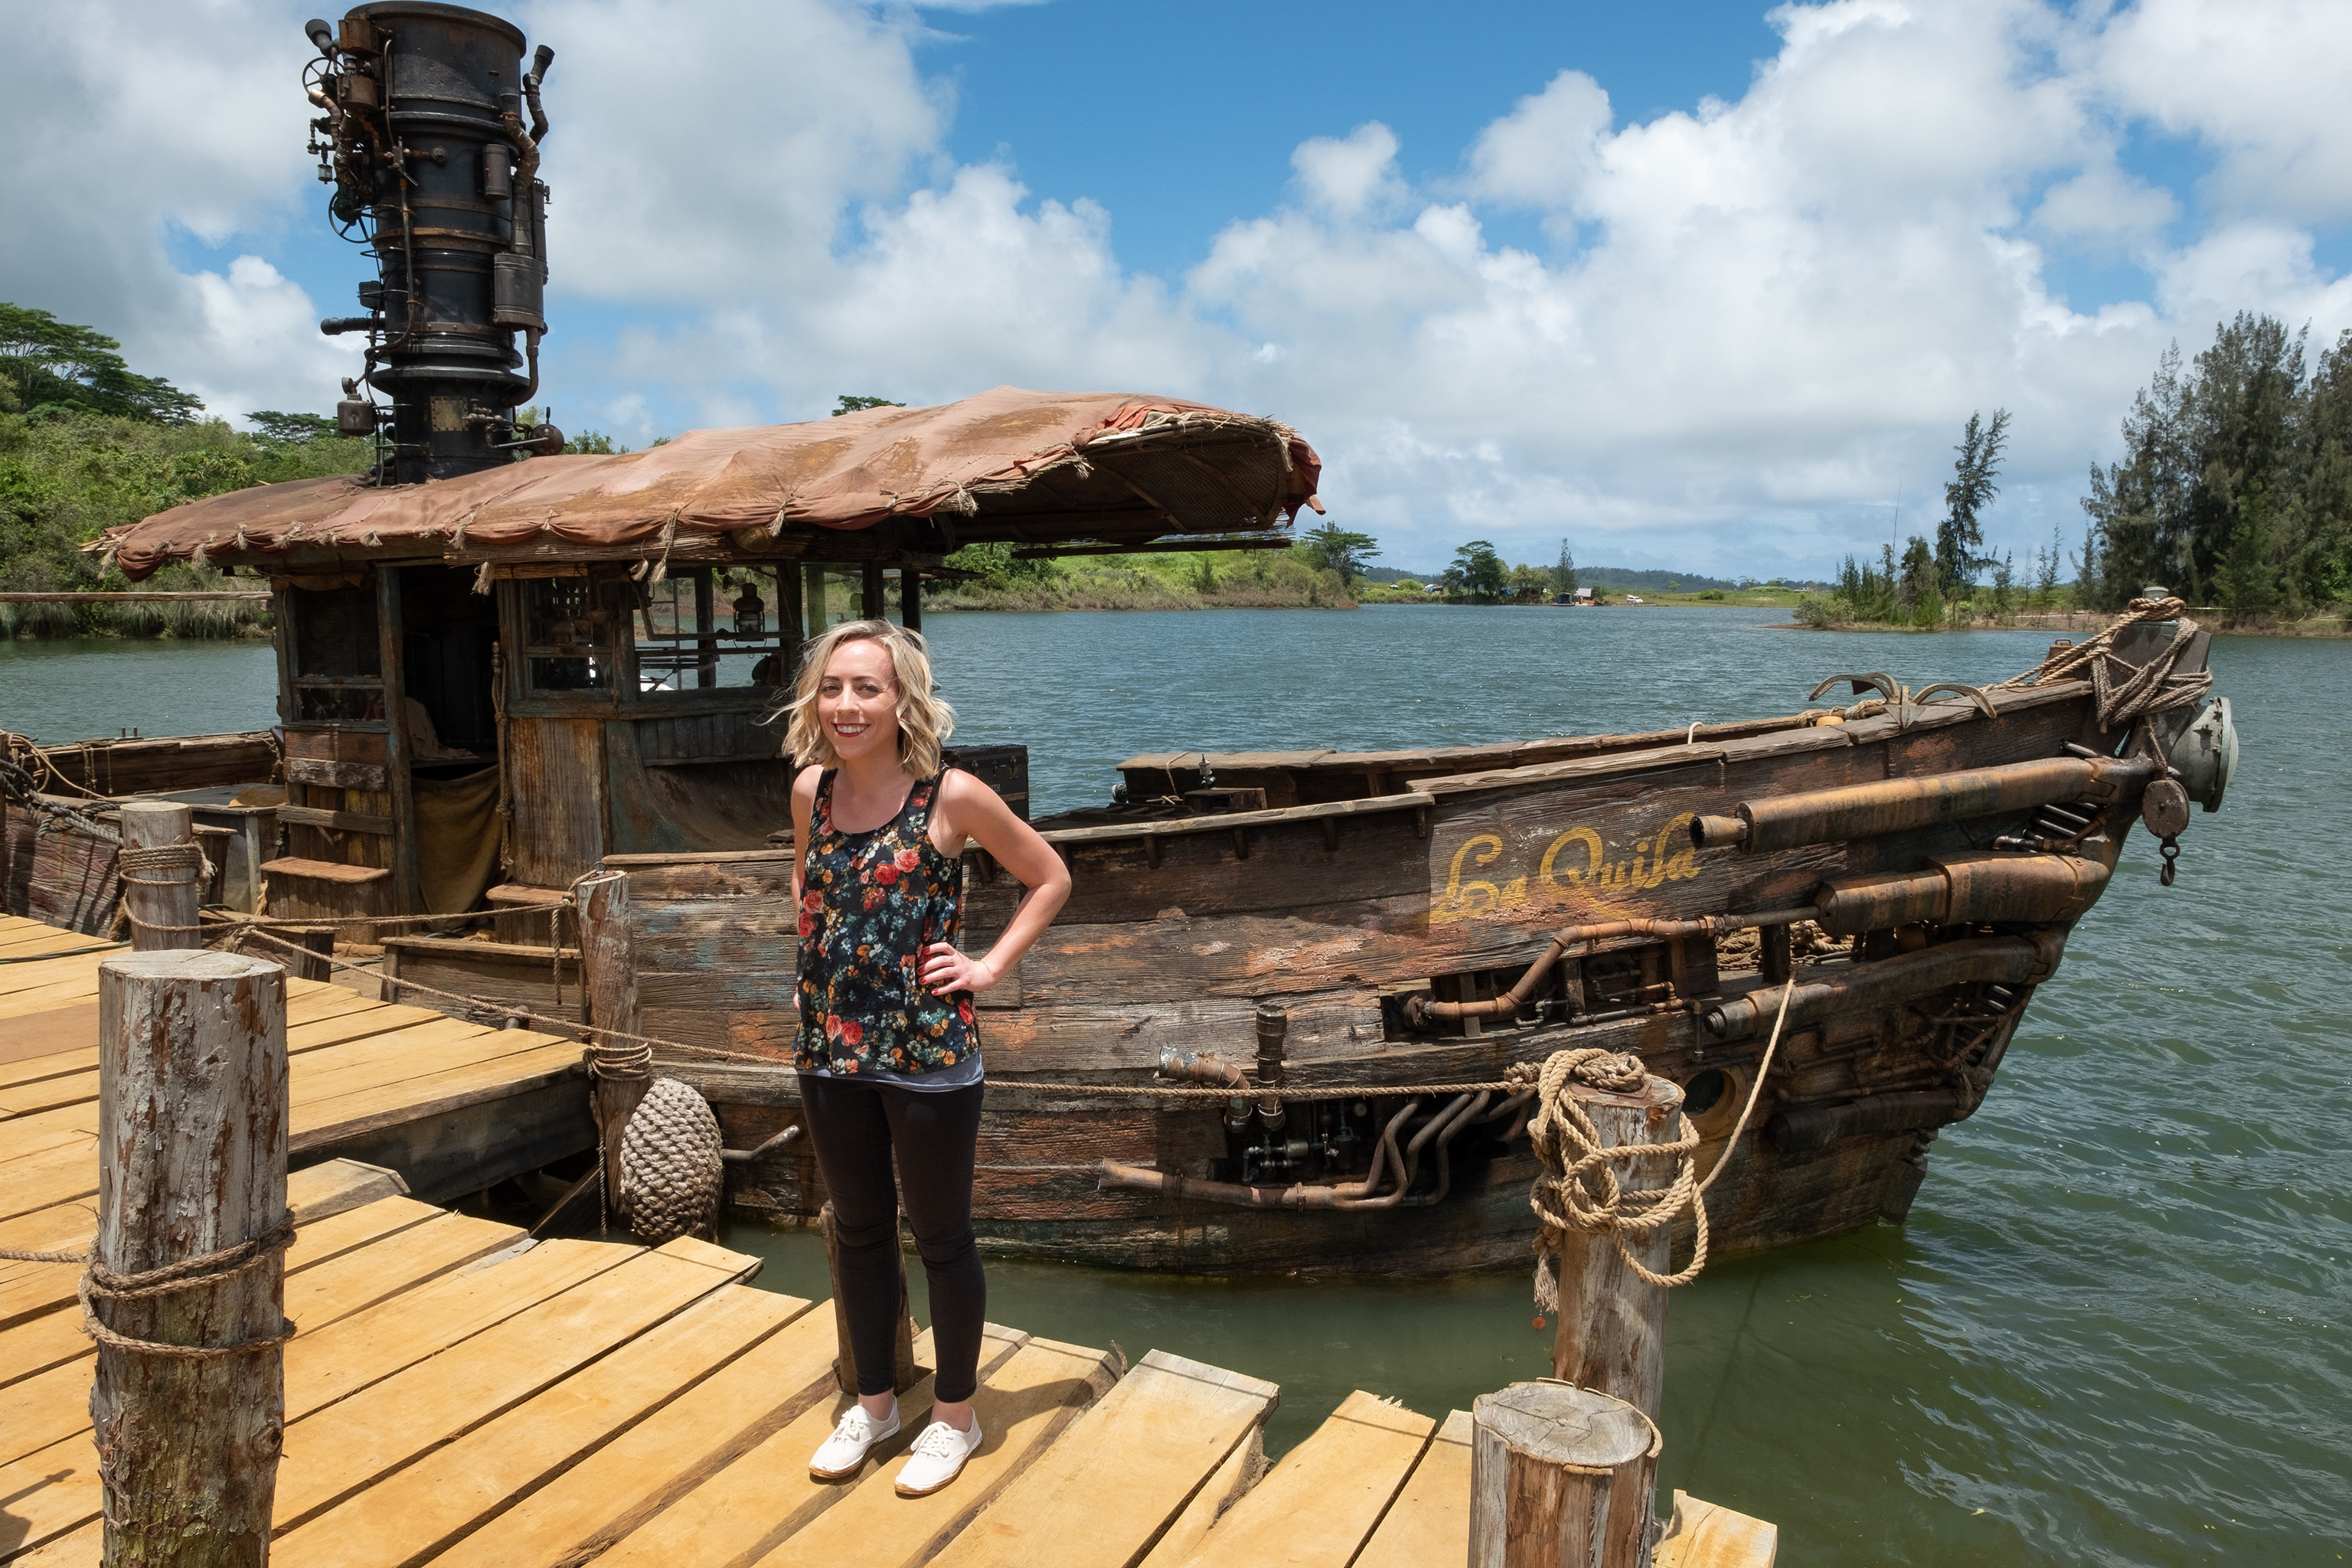 Correspondent Michelle Lema standing in front of of the docked boat La Quila on set of Disney's Jungle Cruise